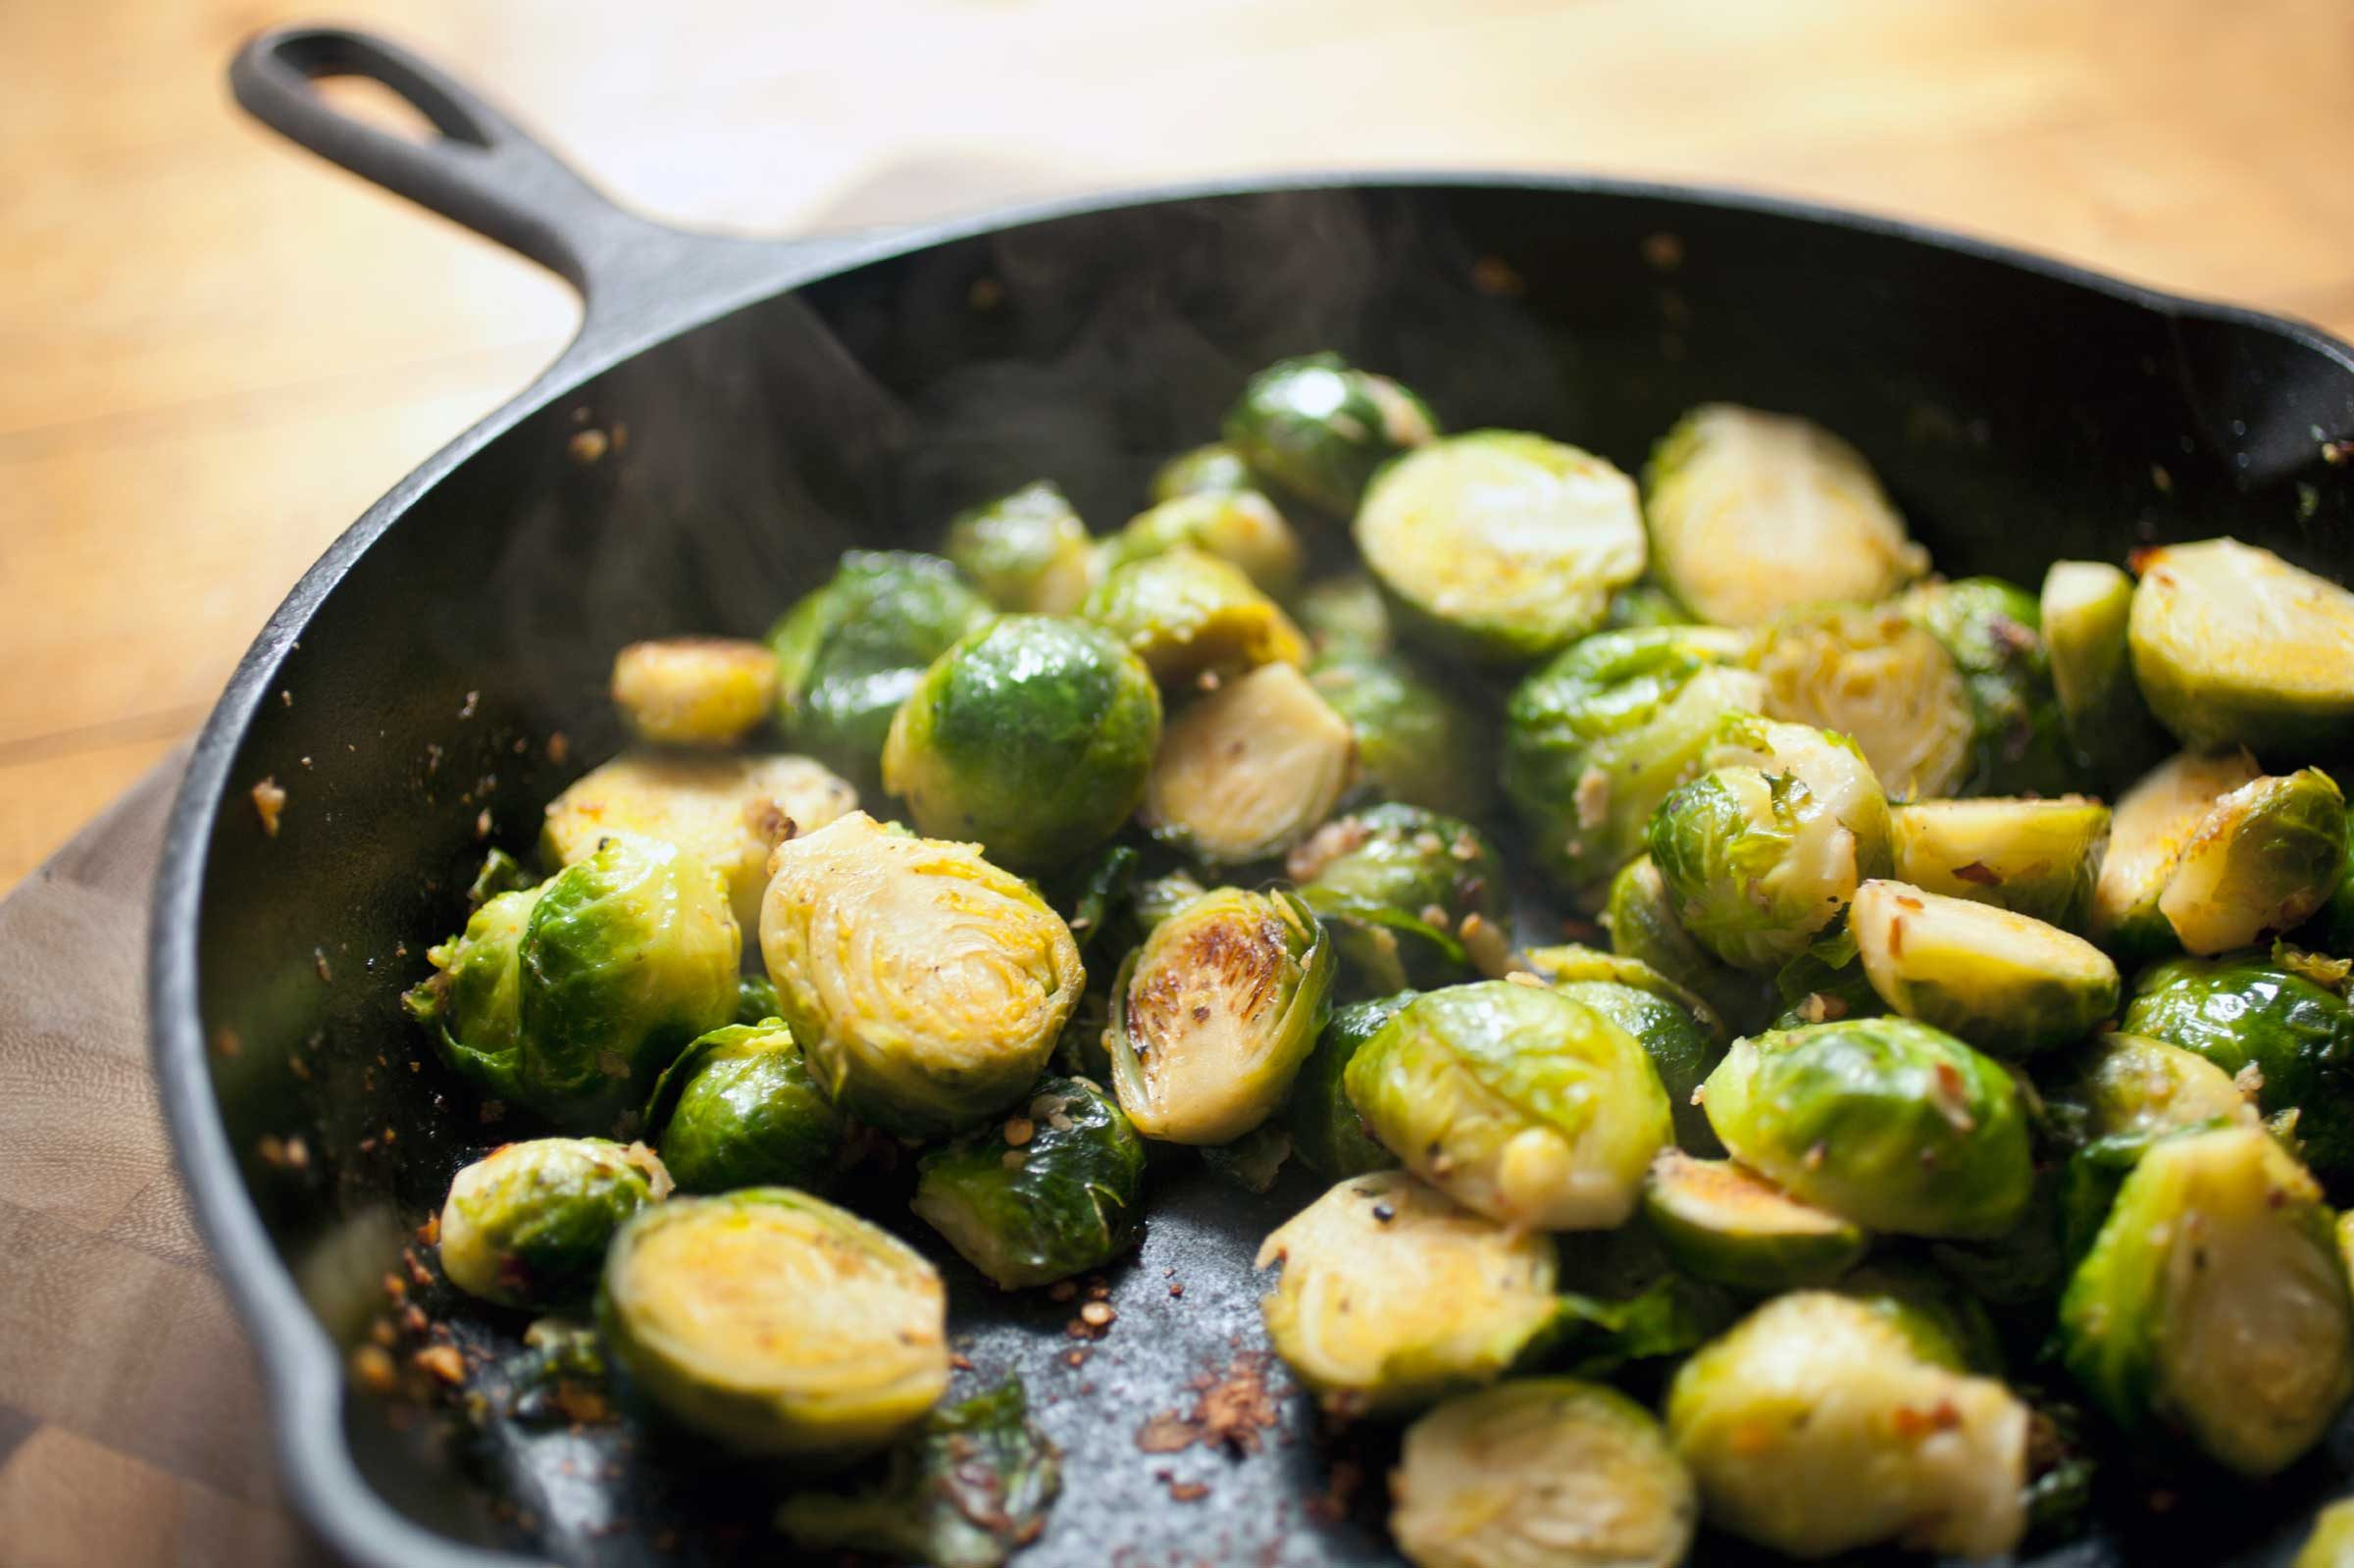 Brussels sprouts: 56 calories per 1 cup